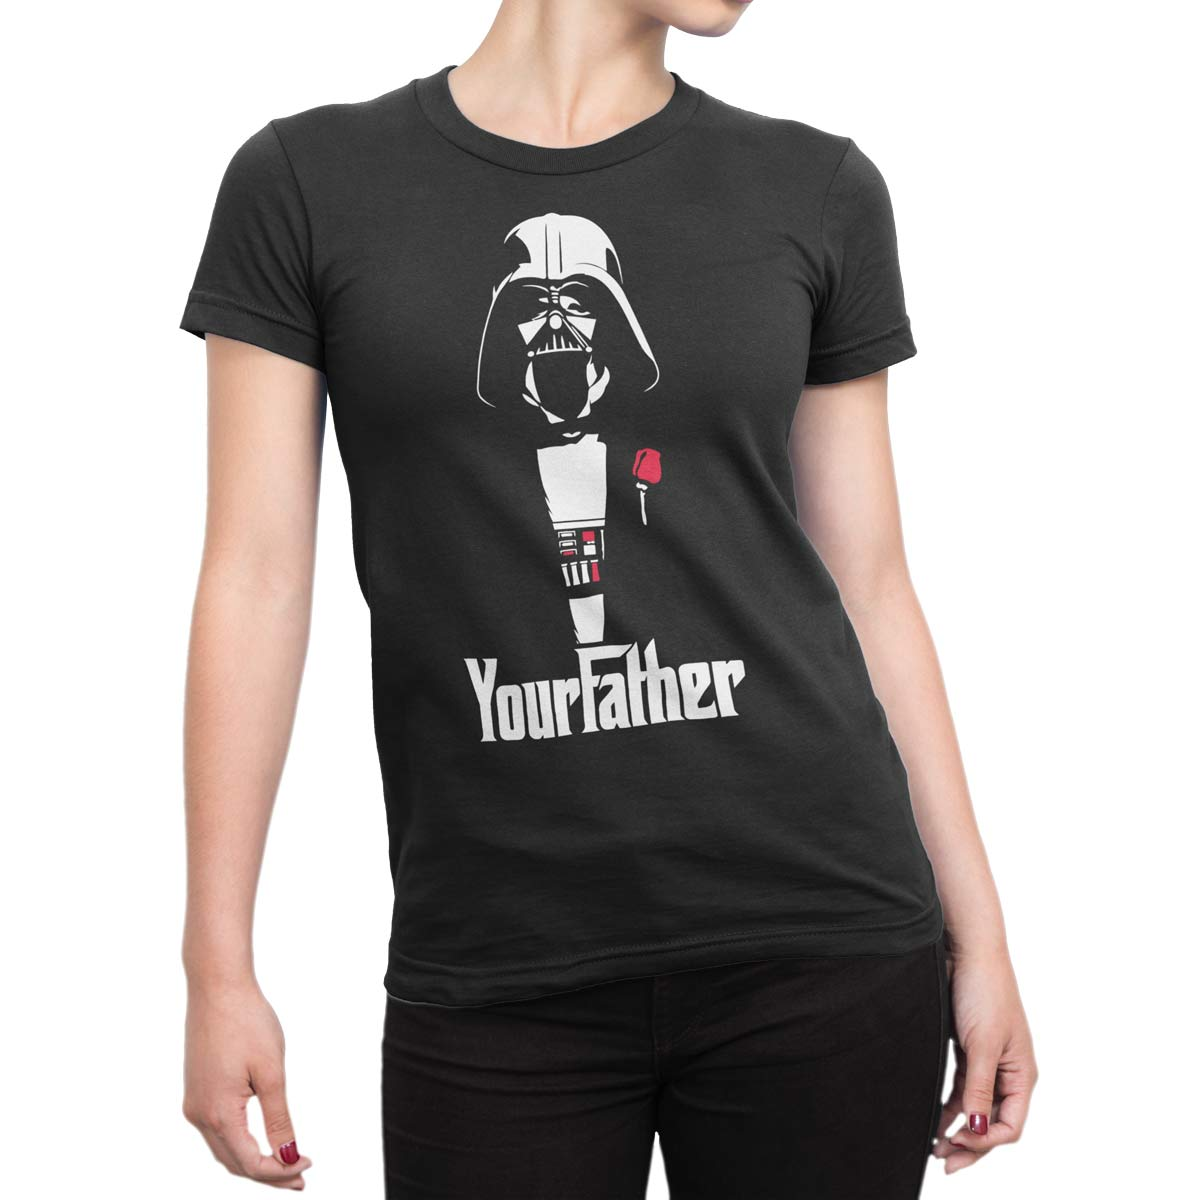 Star wars t shirt your father funny t shirts fantucci T shirts for dad